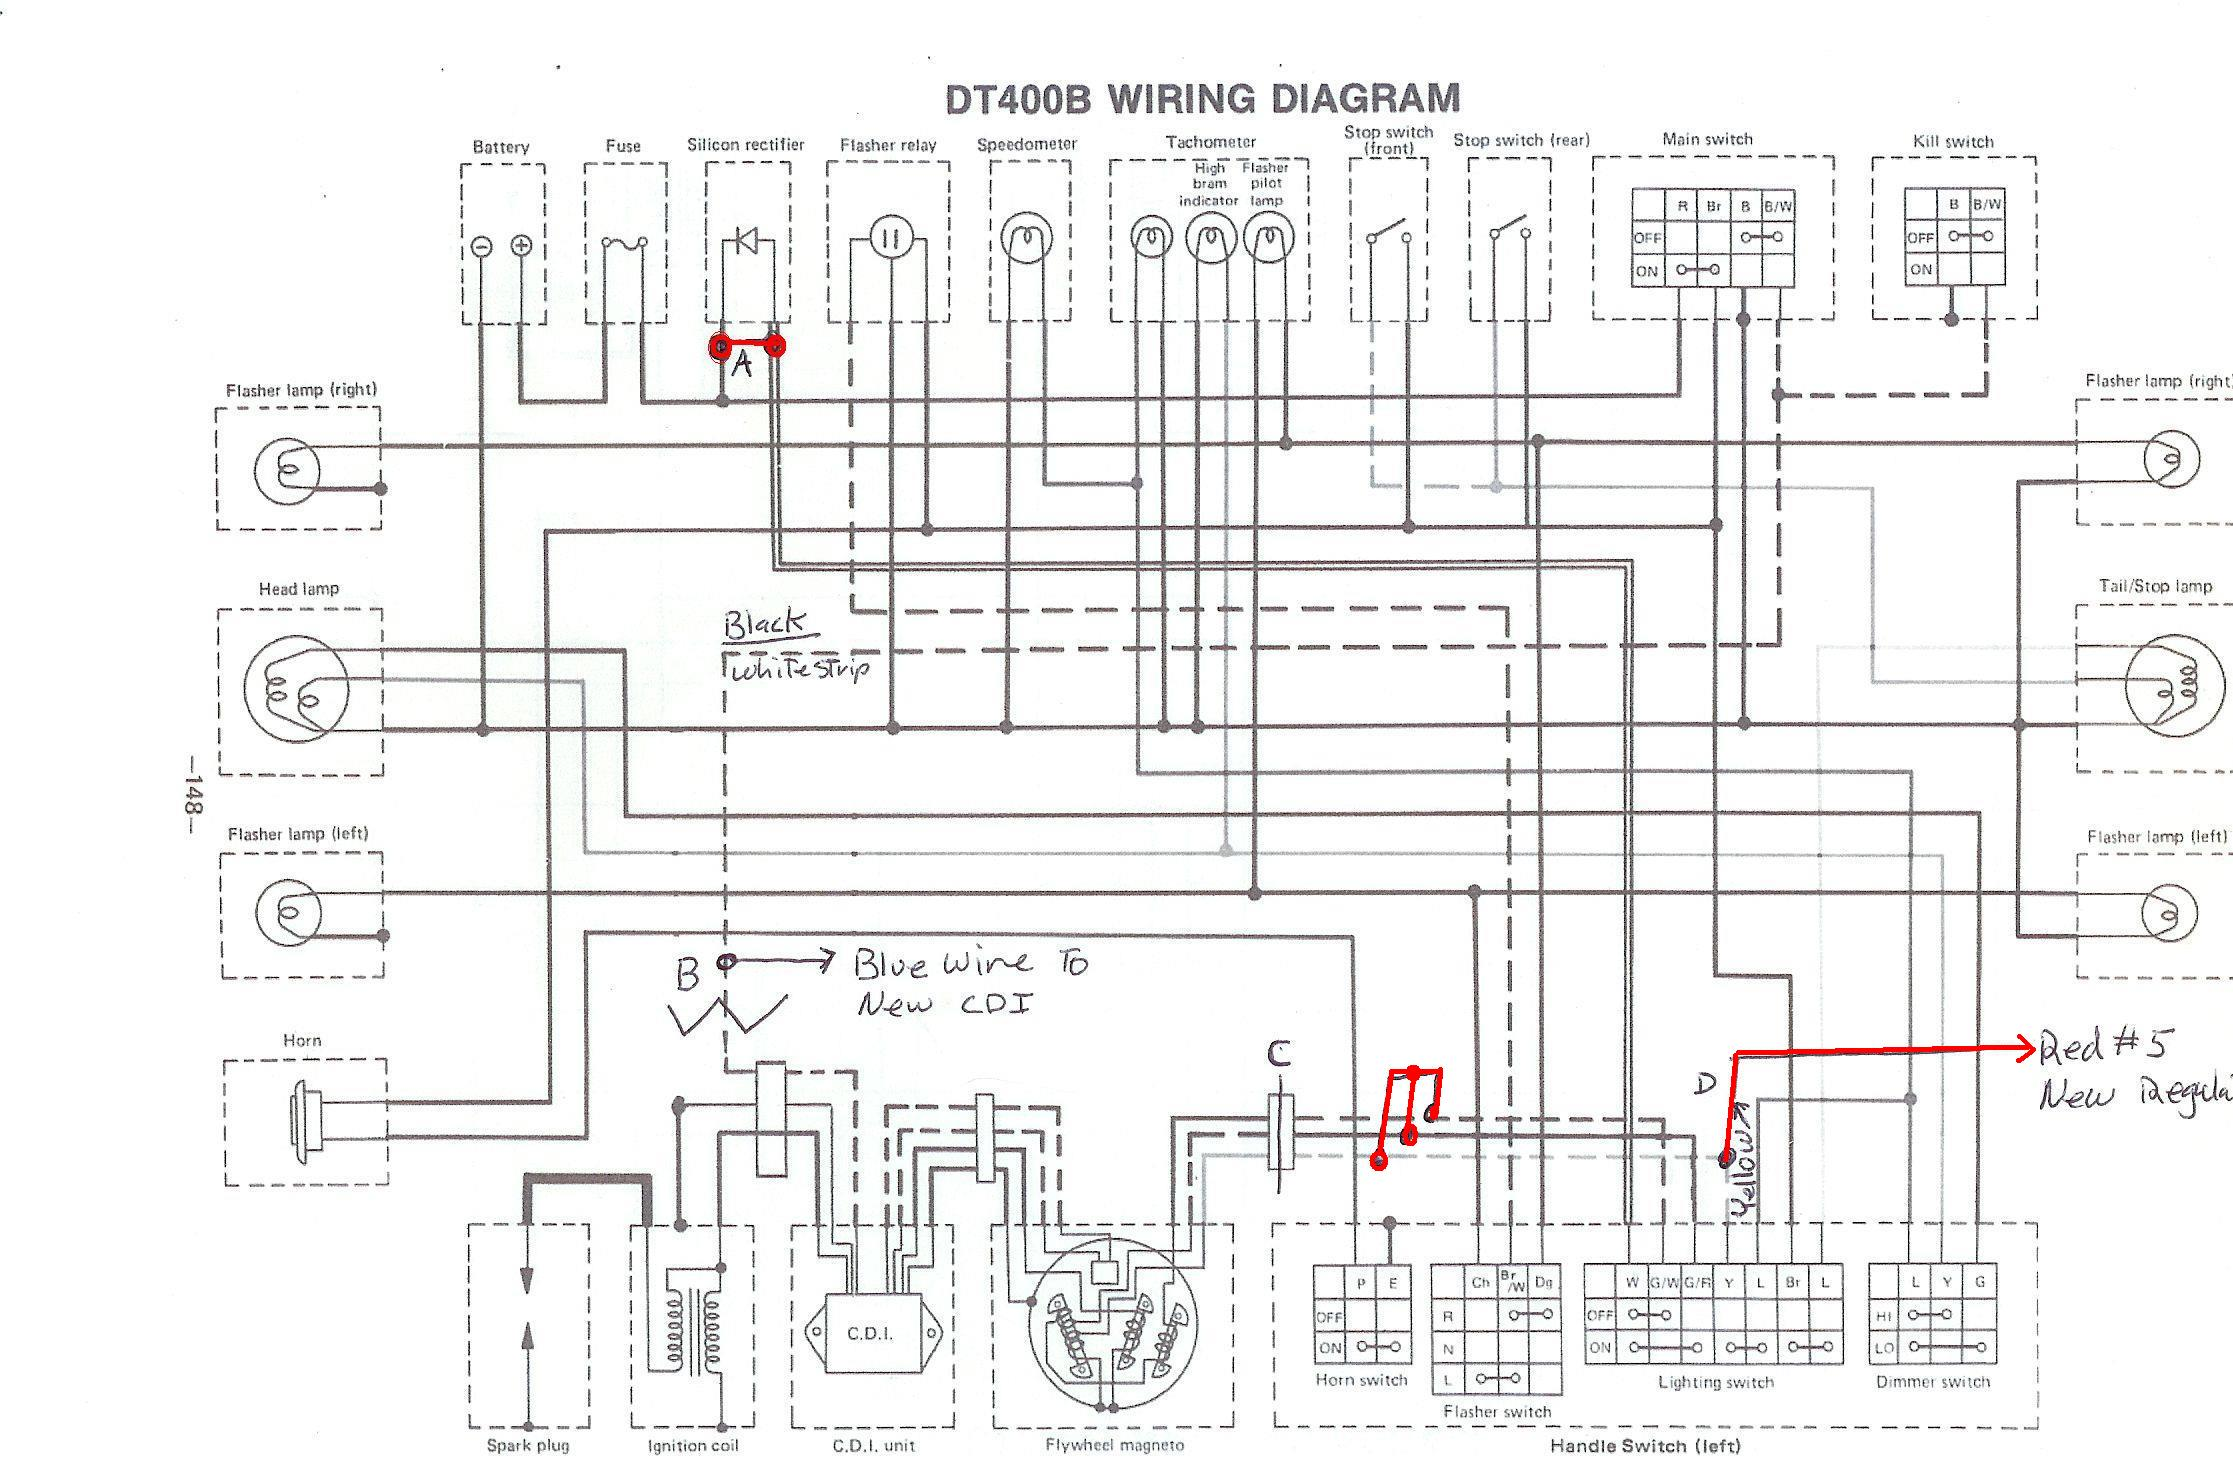 vermeer wiring diagram online circuit wiring diagram u2022 rh electrobuddha co uk vermeer sc252 stump grinder wiring diagram vermeer bc1000xl wiring diagram